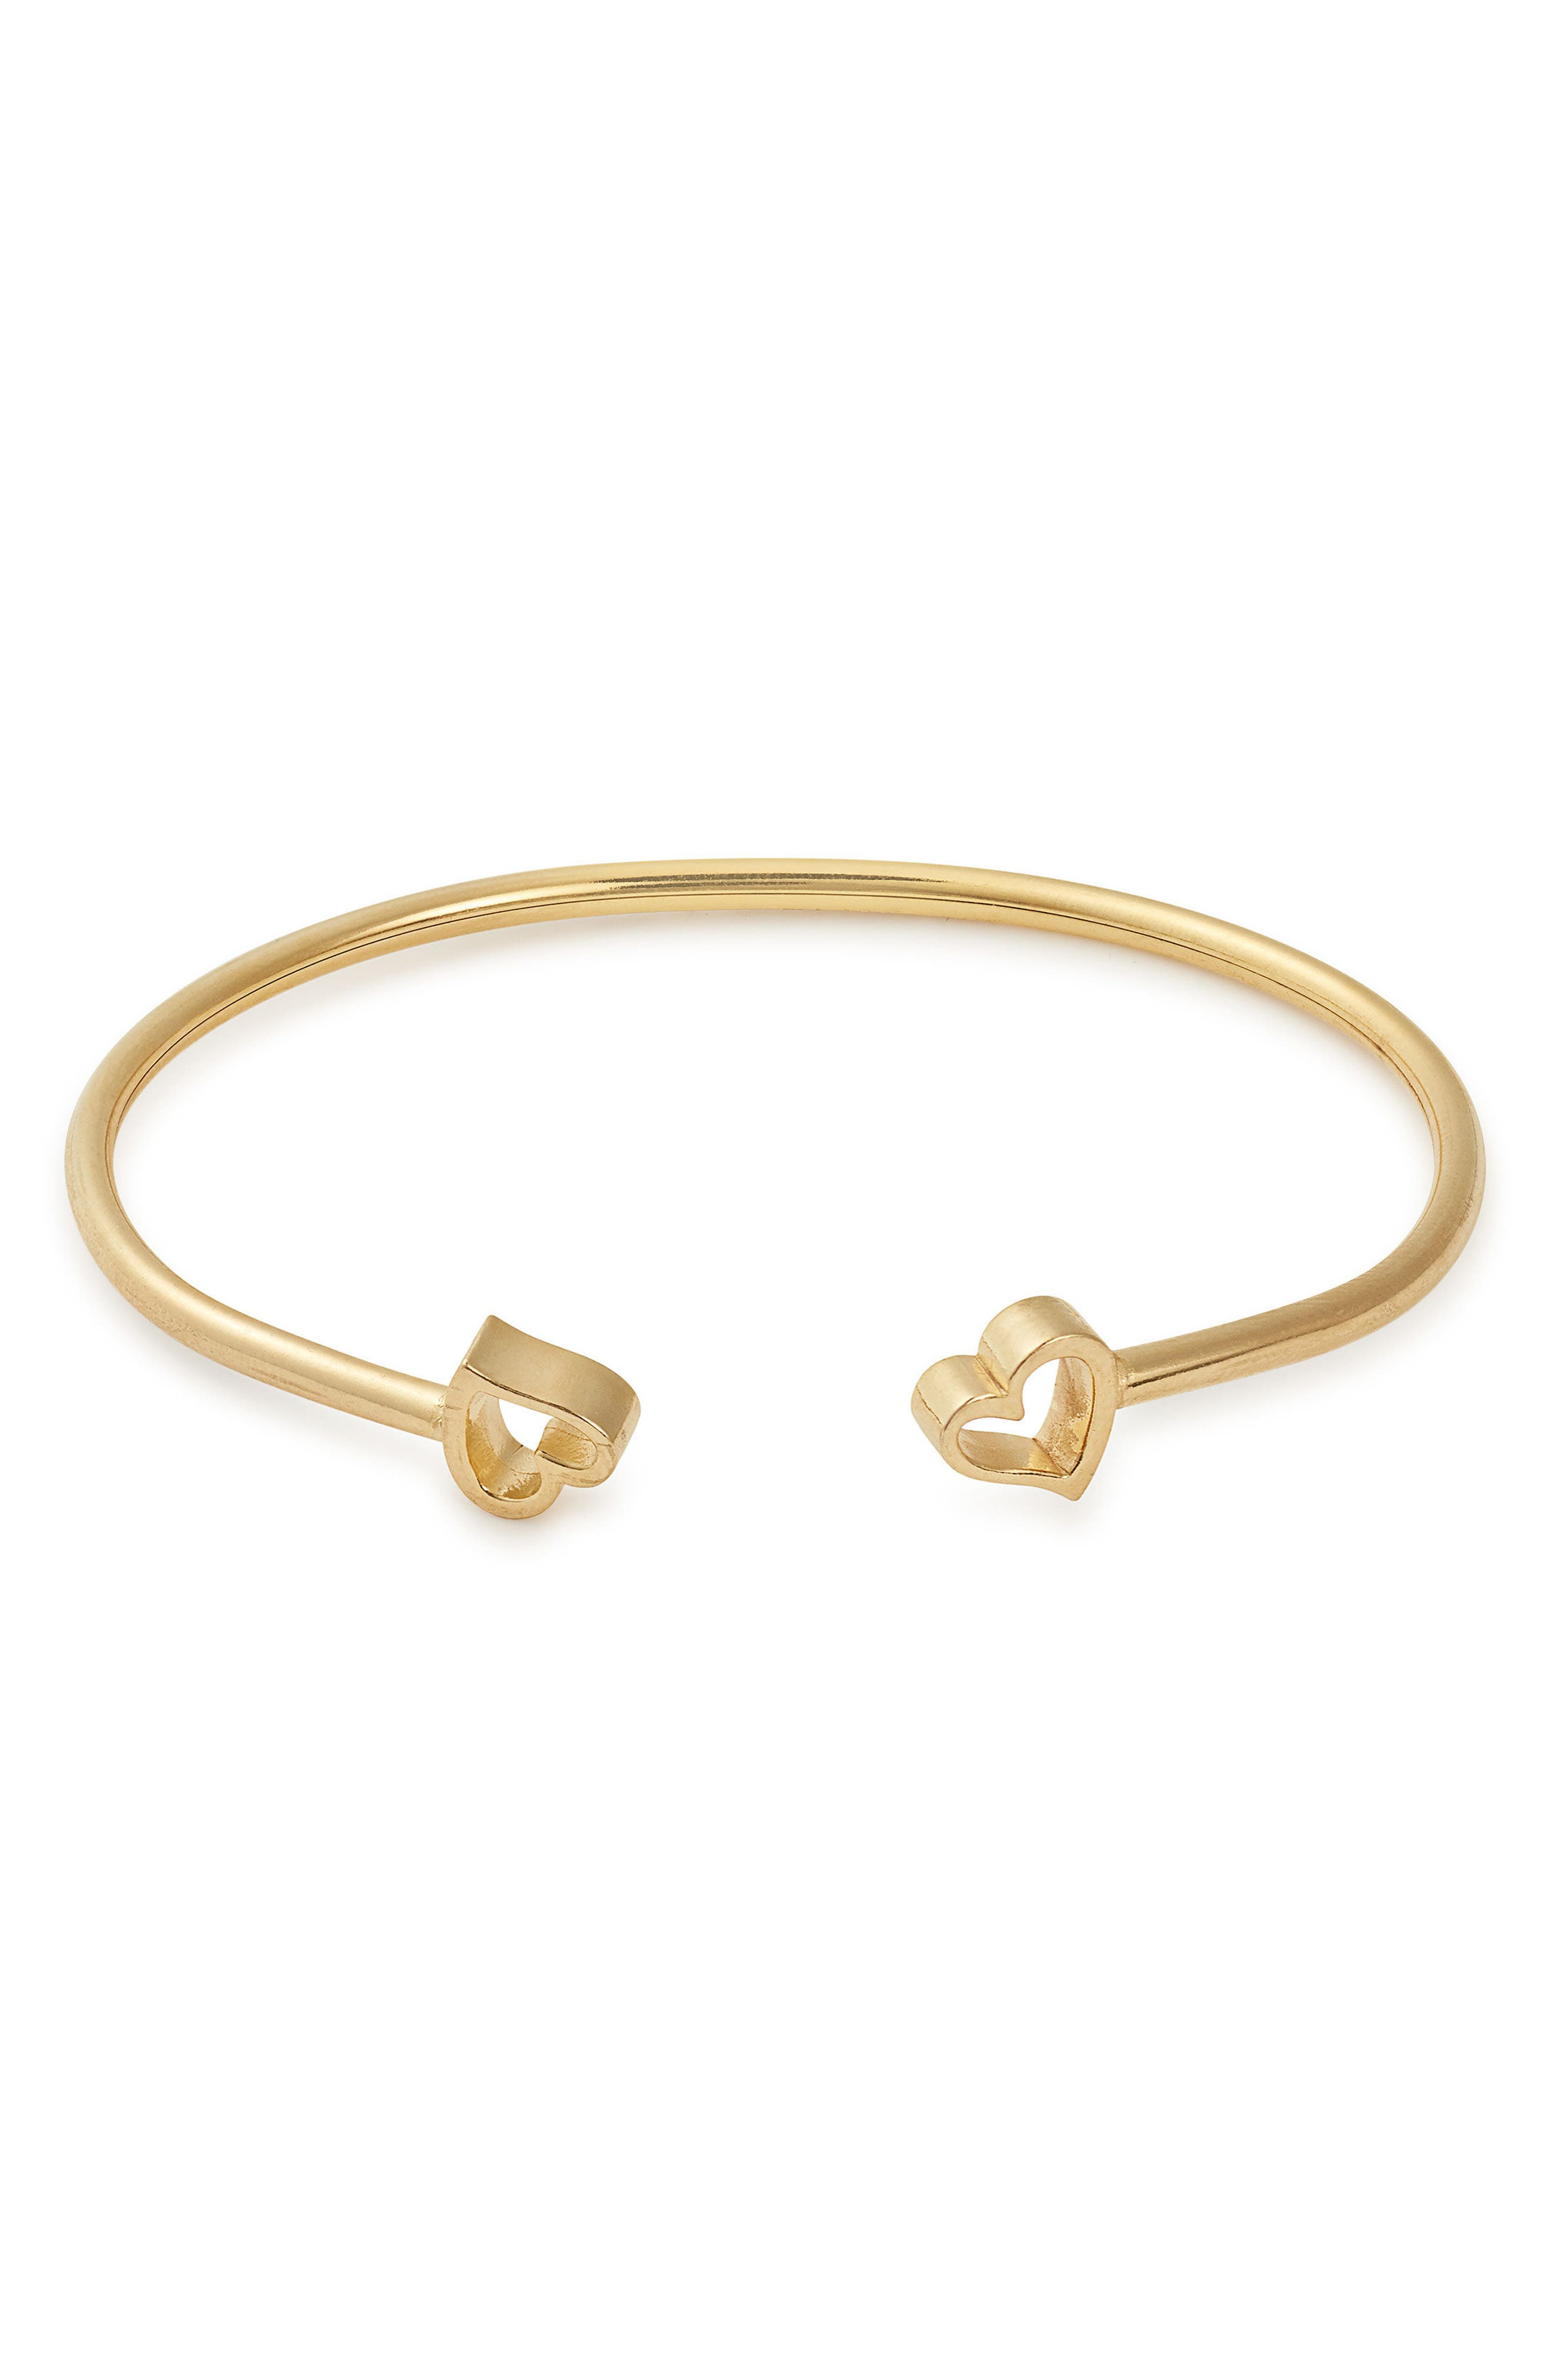 Formidable H Cuff,                             Main thumbnail 1, color,                             Gold